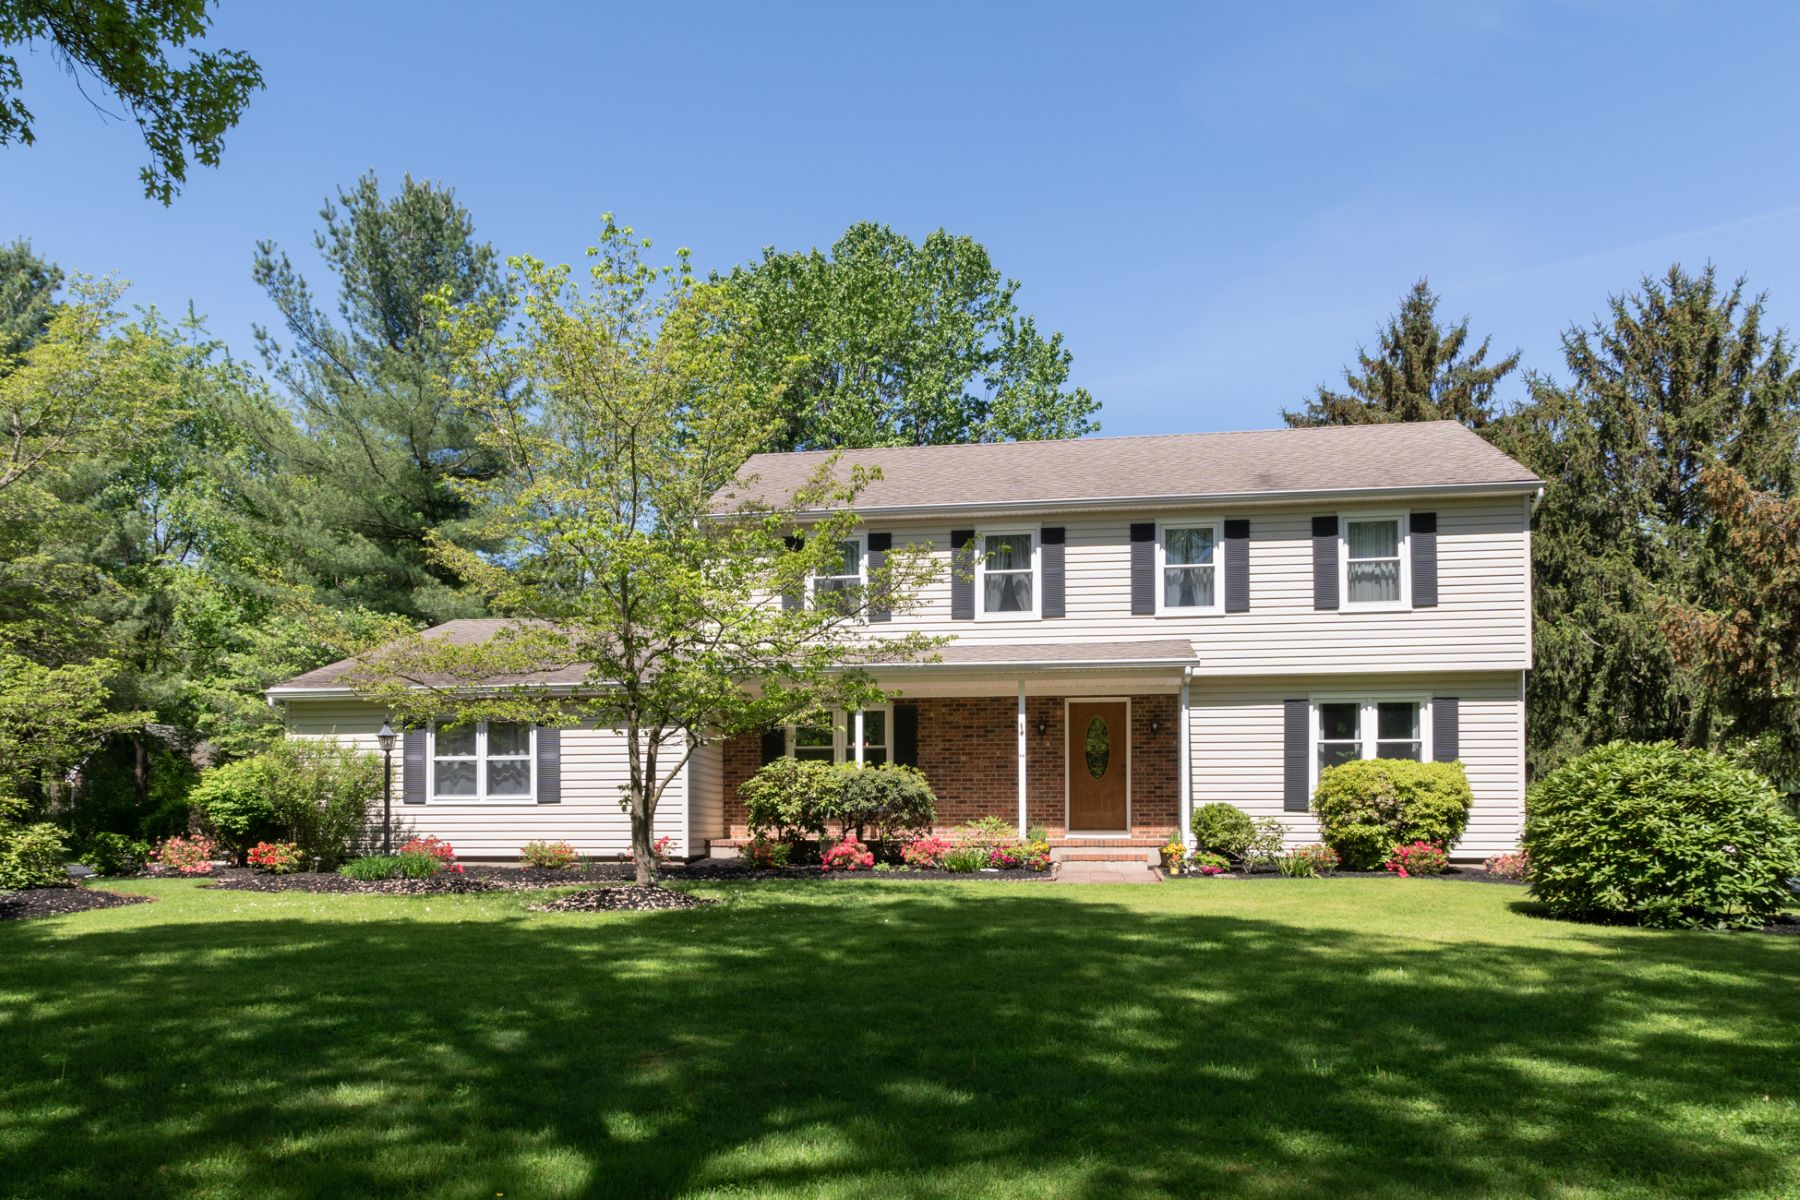 single family homes for Sale at Picturesque and Attractively Appointed - Montgomery Township 22 Hoagland Drive, Belle Mead, New Jersey 08502 United States